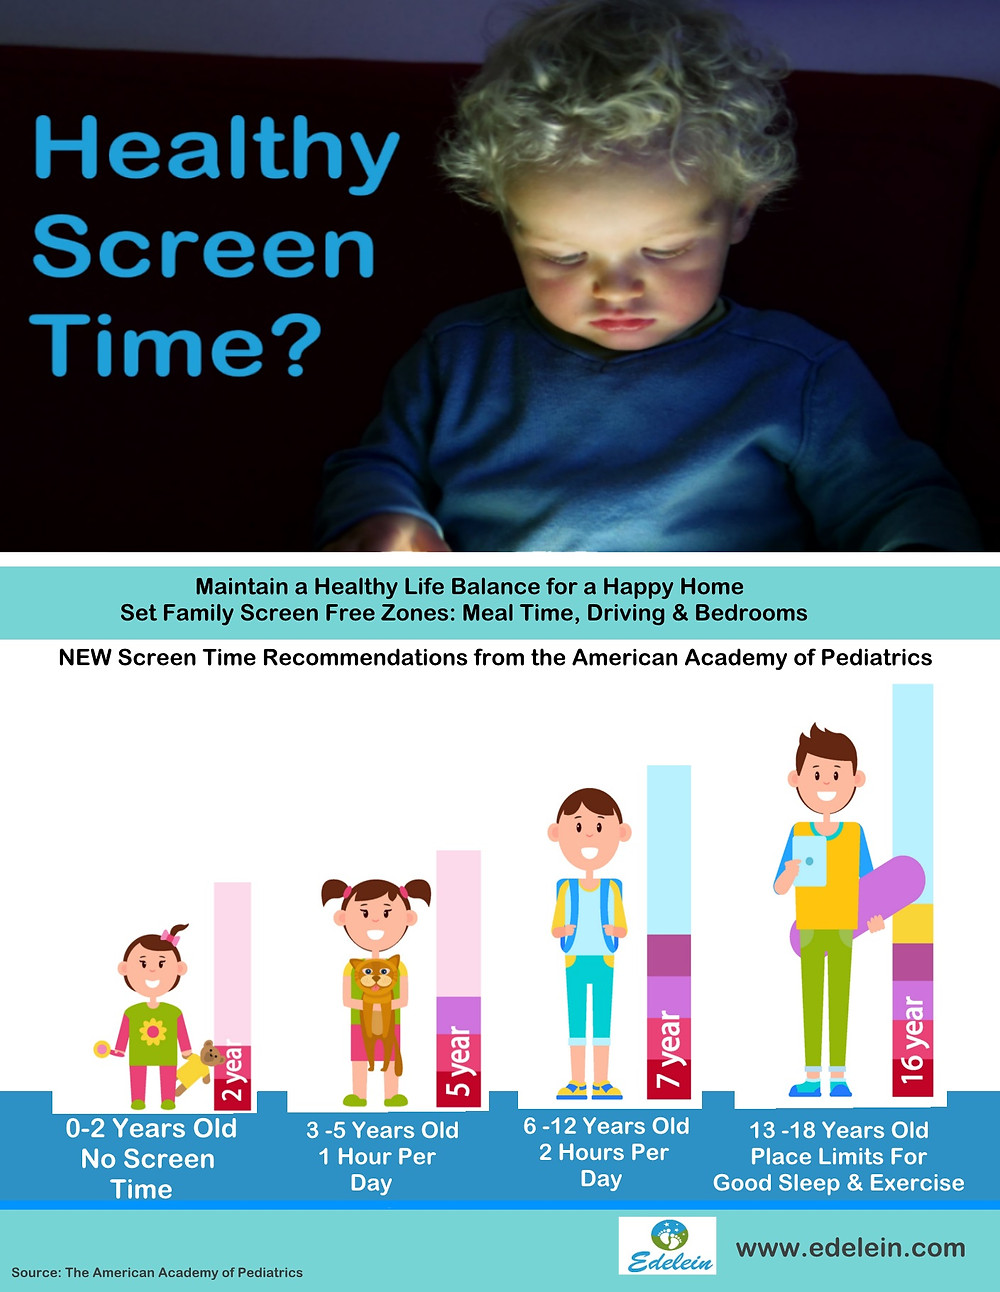 New Screen Time Recommendations